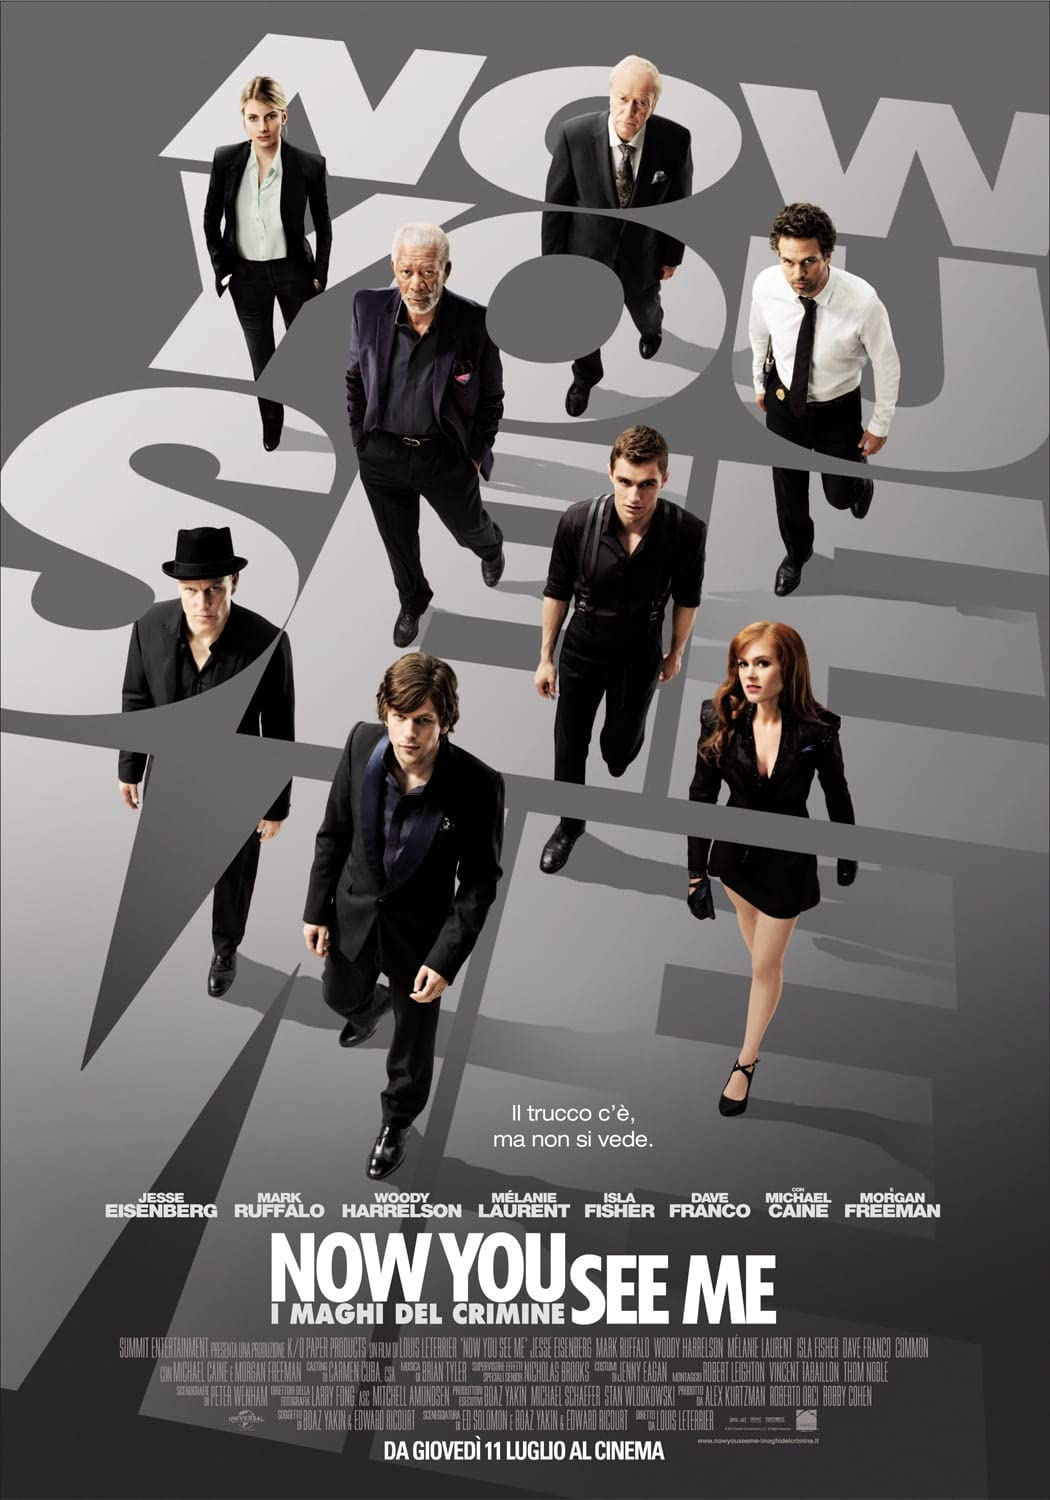 Now You See Me (2013) Hindi Dubbed